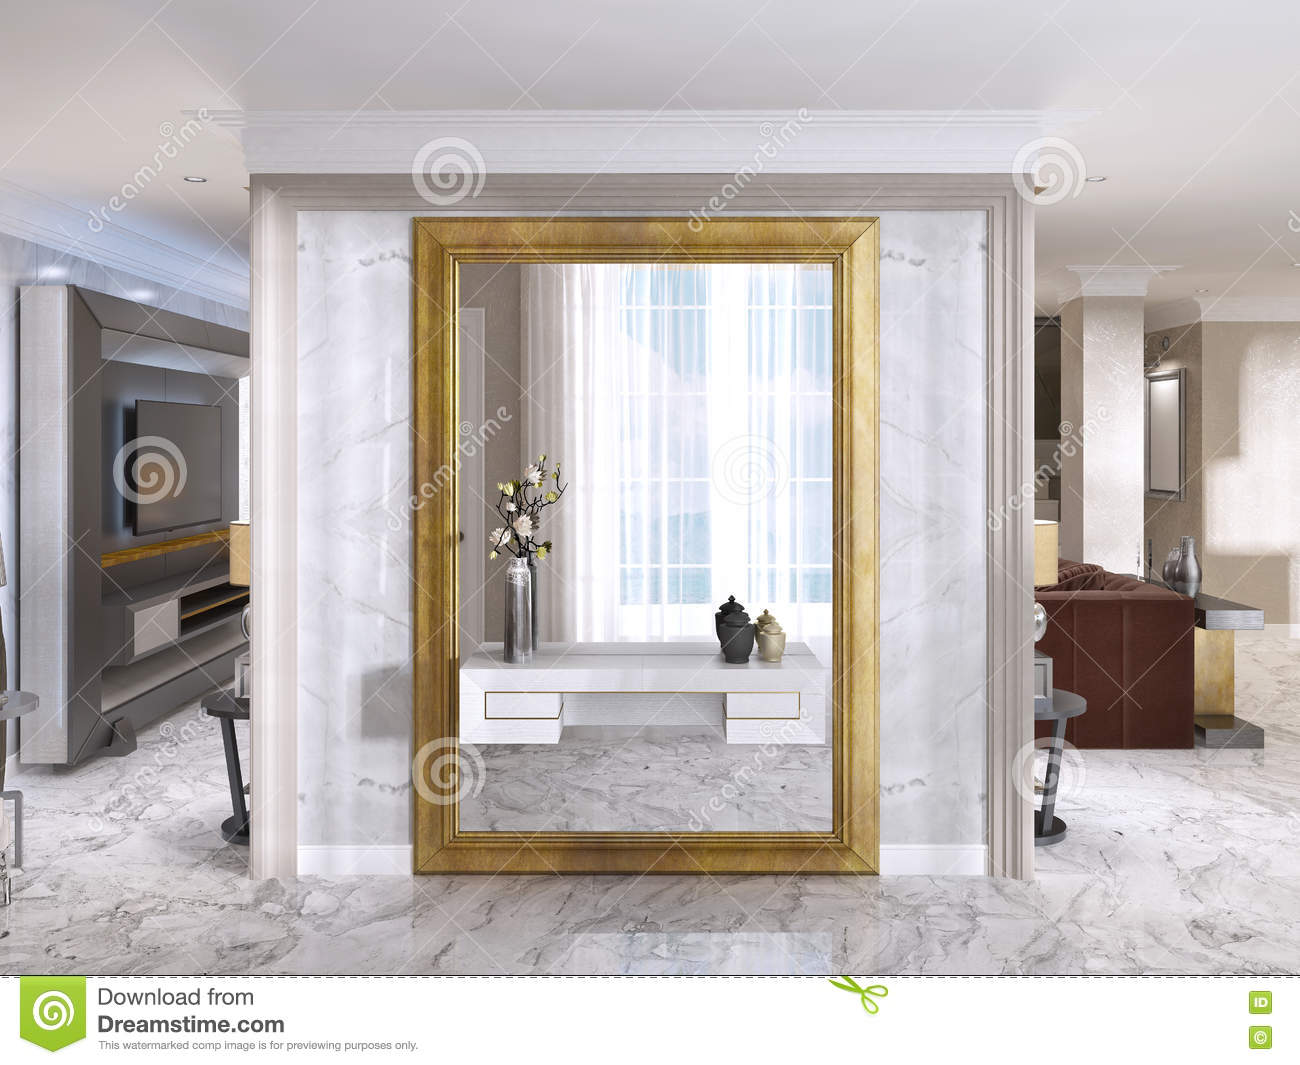 Luxurious Art Deco Entrance Hall With A Large Designer